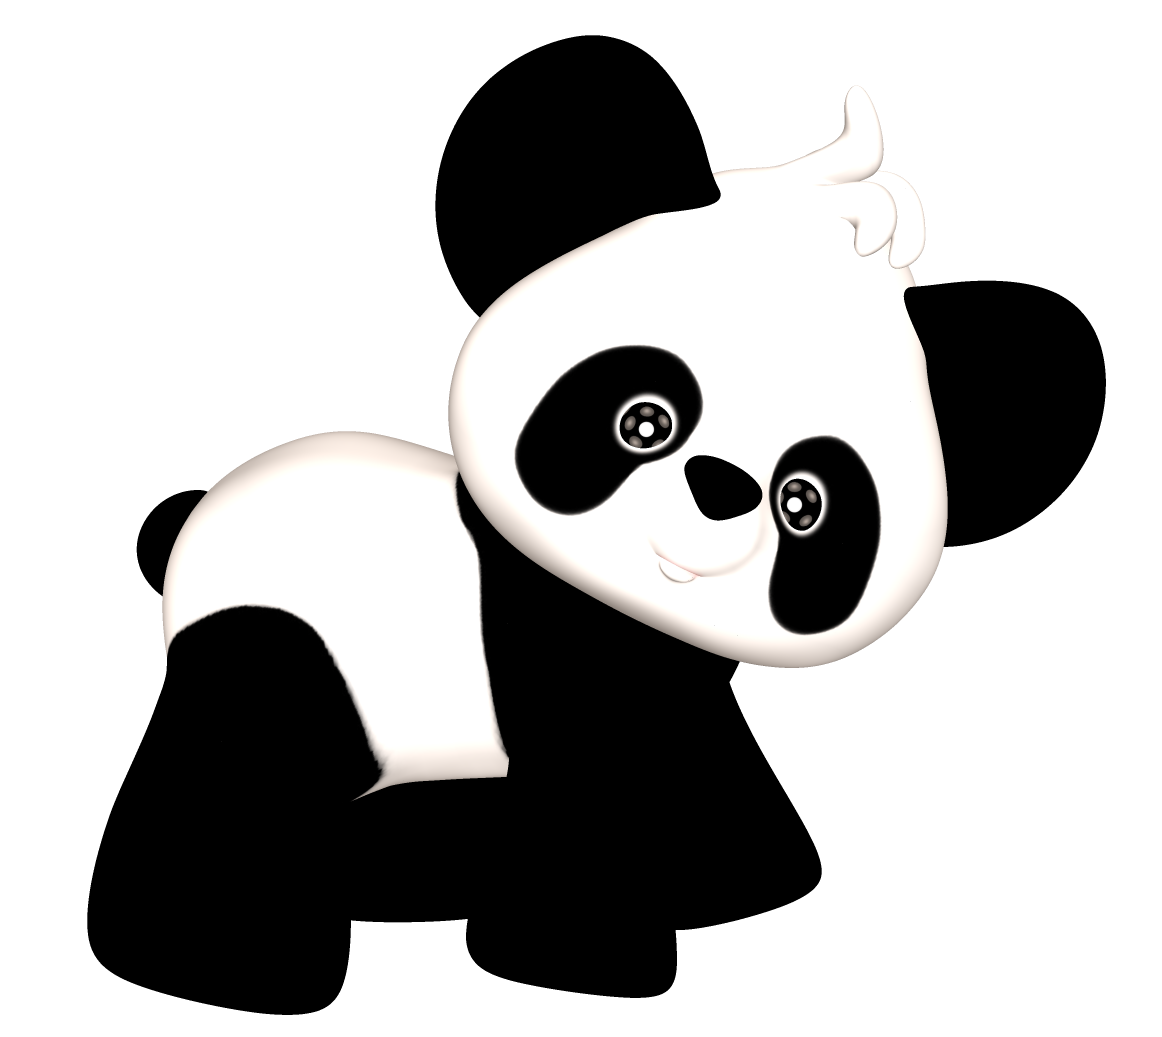 Kiss clipart panda bear. Instagram icon techflourish collections